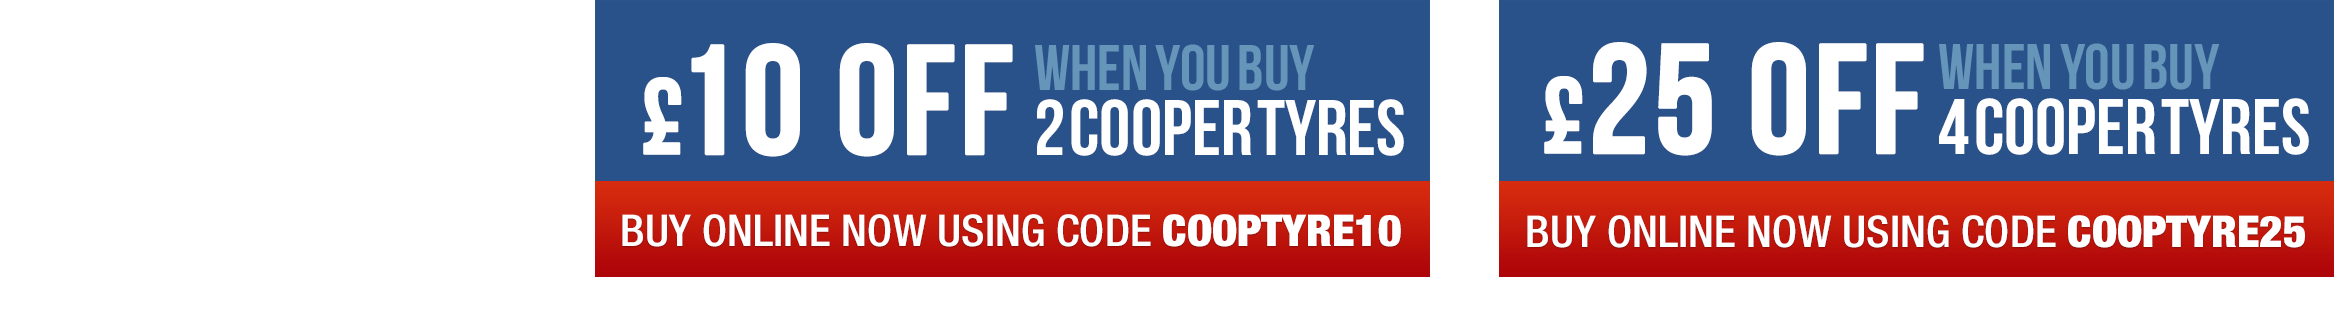 Great offers on Cooper Tyres